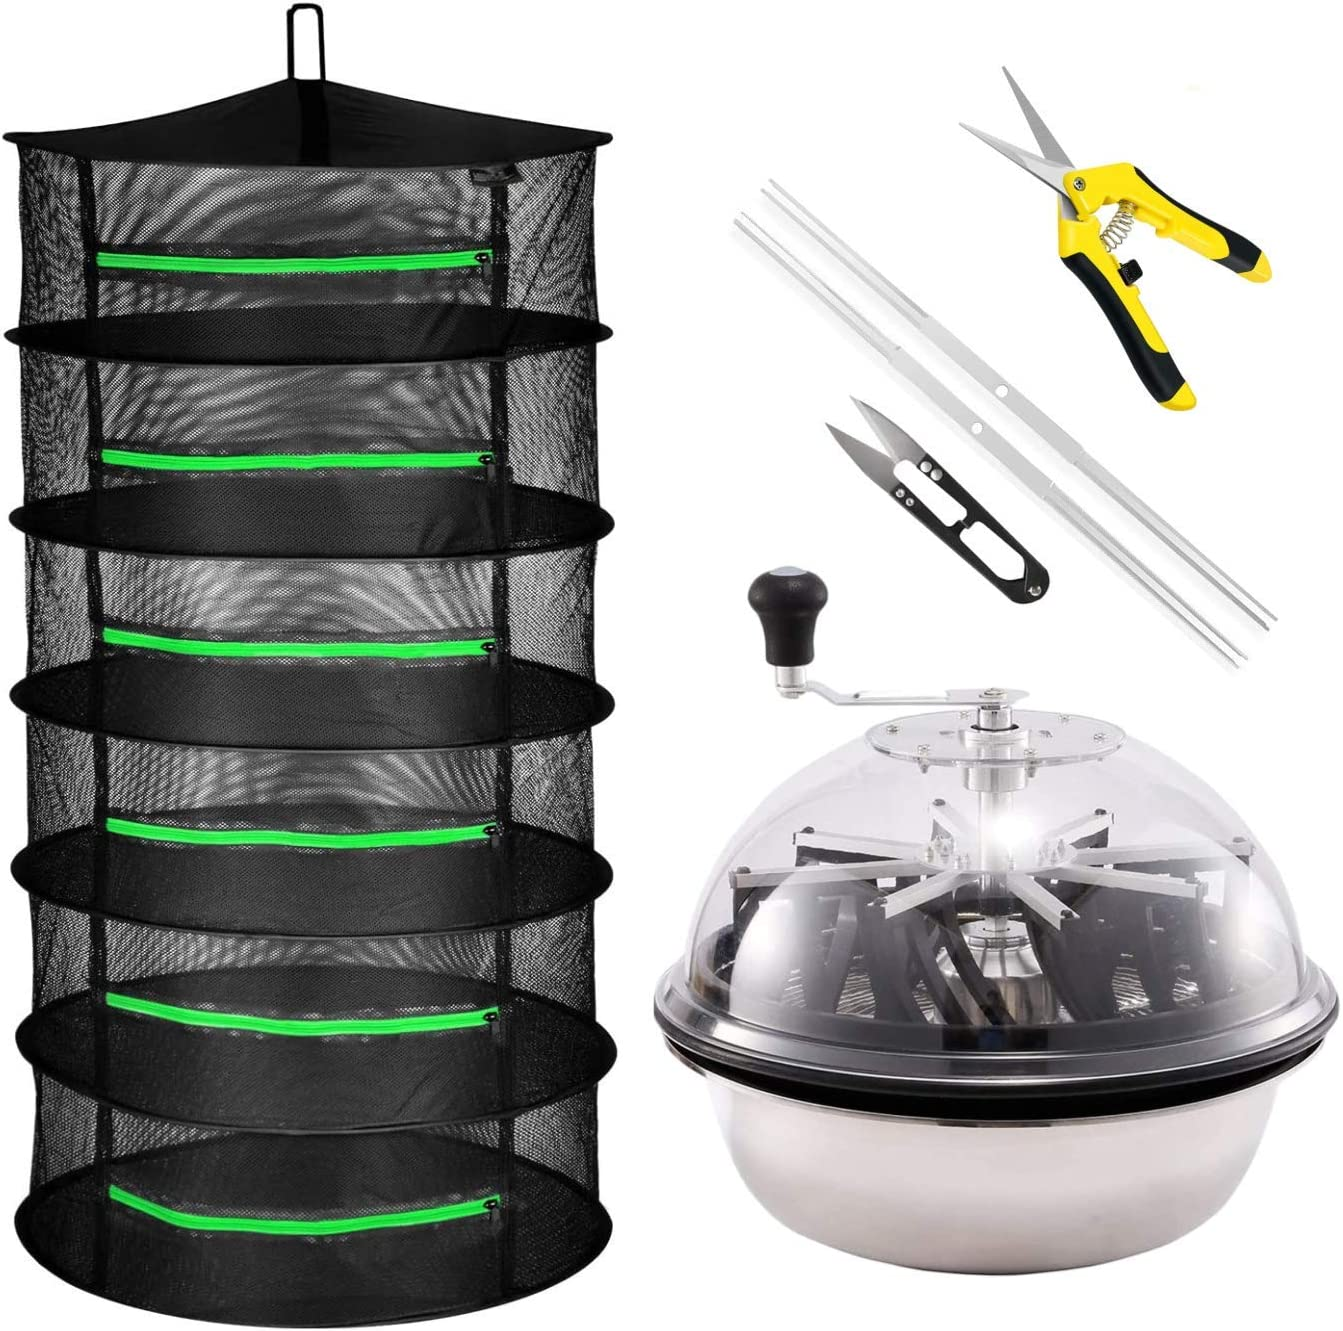 """iPower 19-Inch Bud Leaf Bowl Trimmer Twisted Spin Cut for Plant and Flower, Upgraded Gears, Combo with 2ft 6 Layers Hanging Herb Drying Rack Net, Zippered, 6L, 6.5"""" Gardening Hand Pruner, Yellow"""